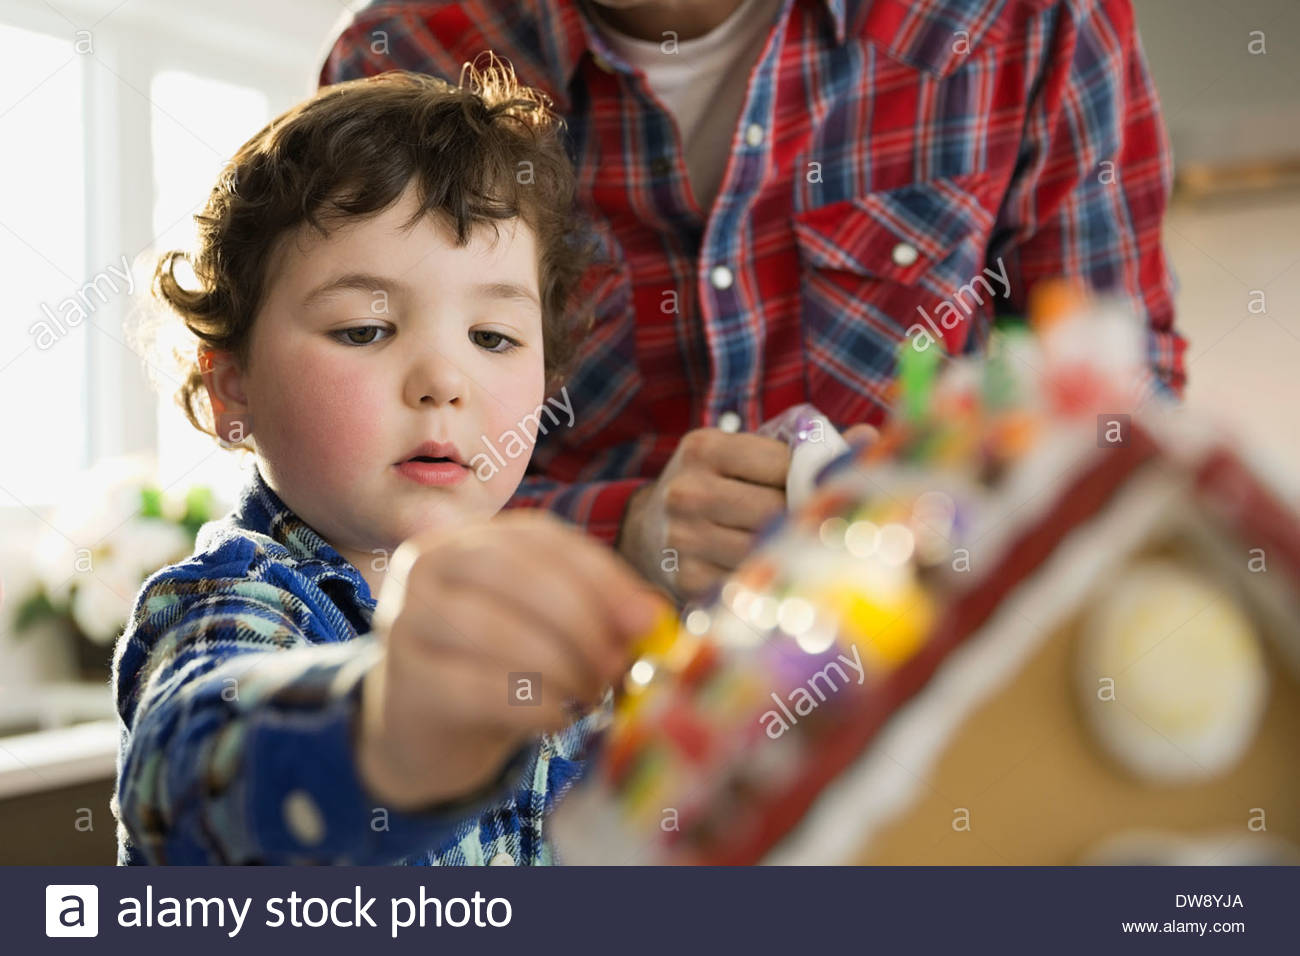 Cute boy decorating gingerbread house during Christmas - Stock Image